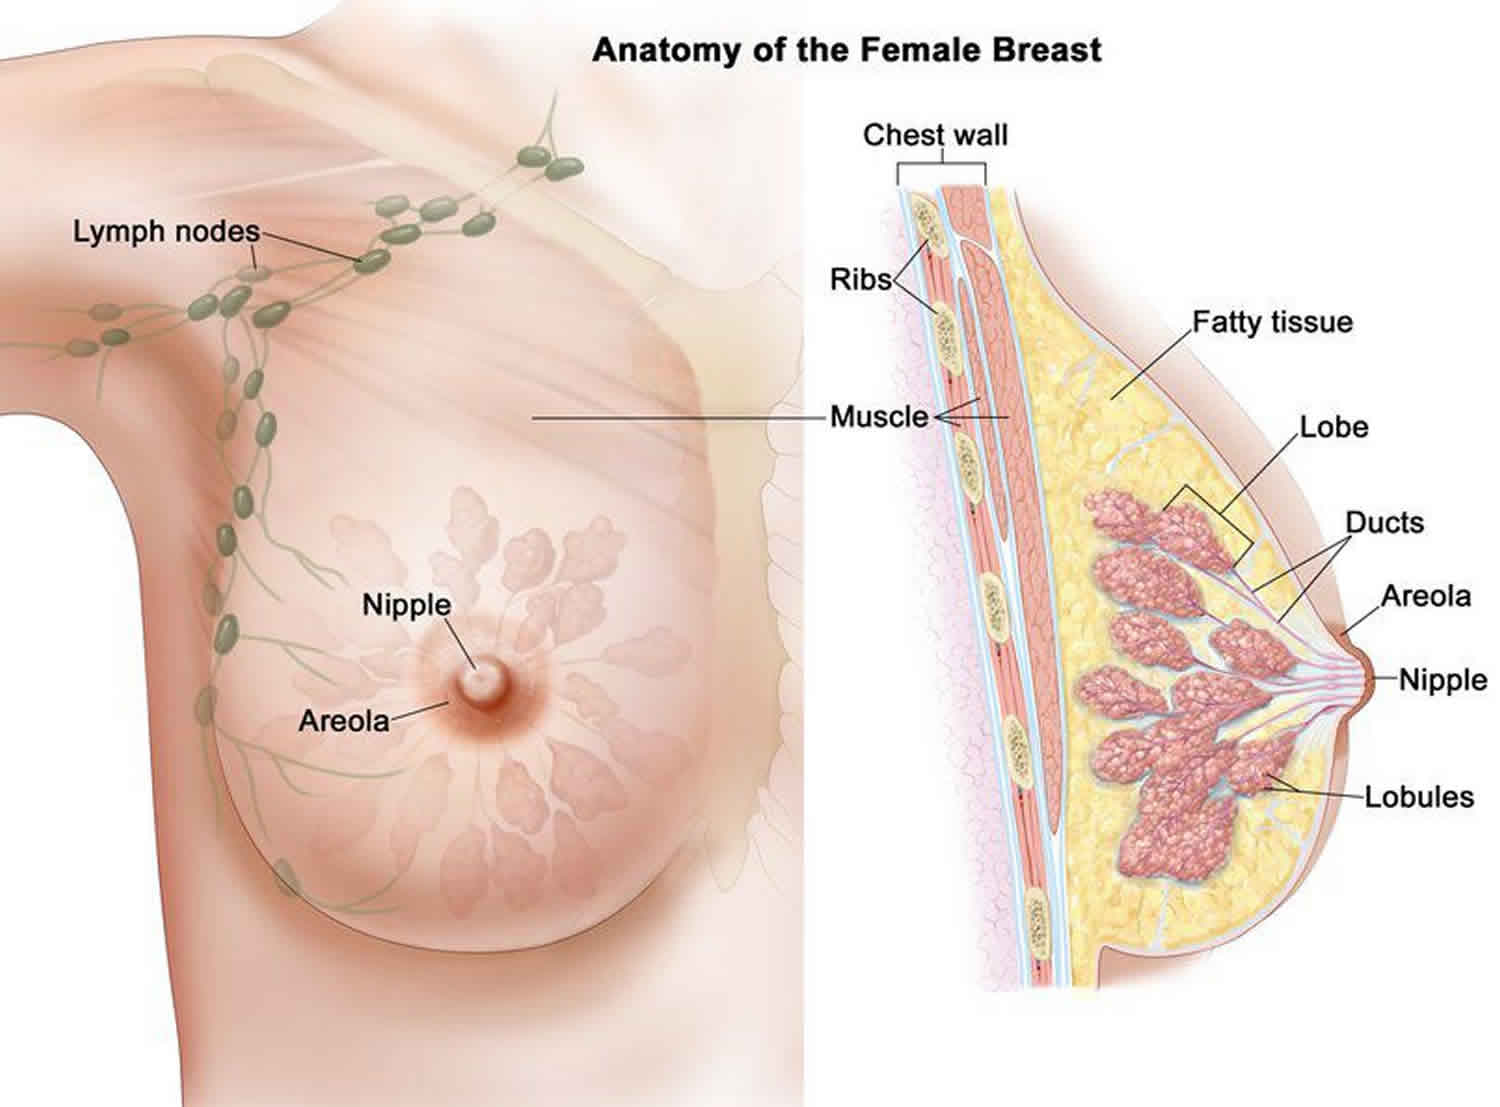 what causes papilloma of the breast